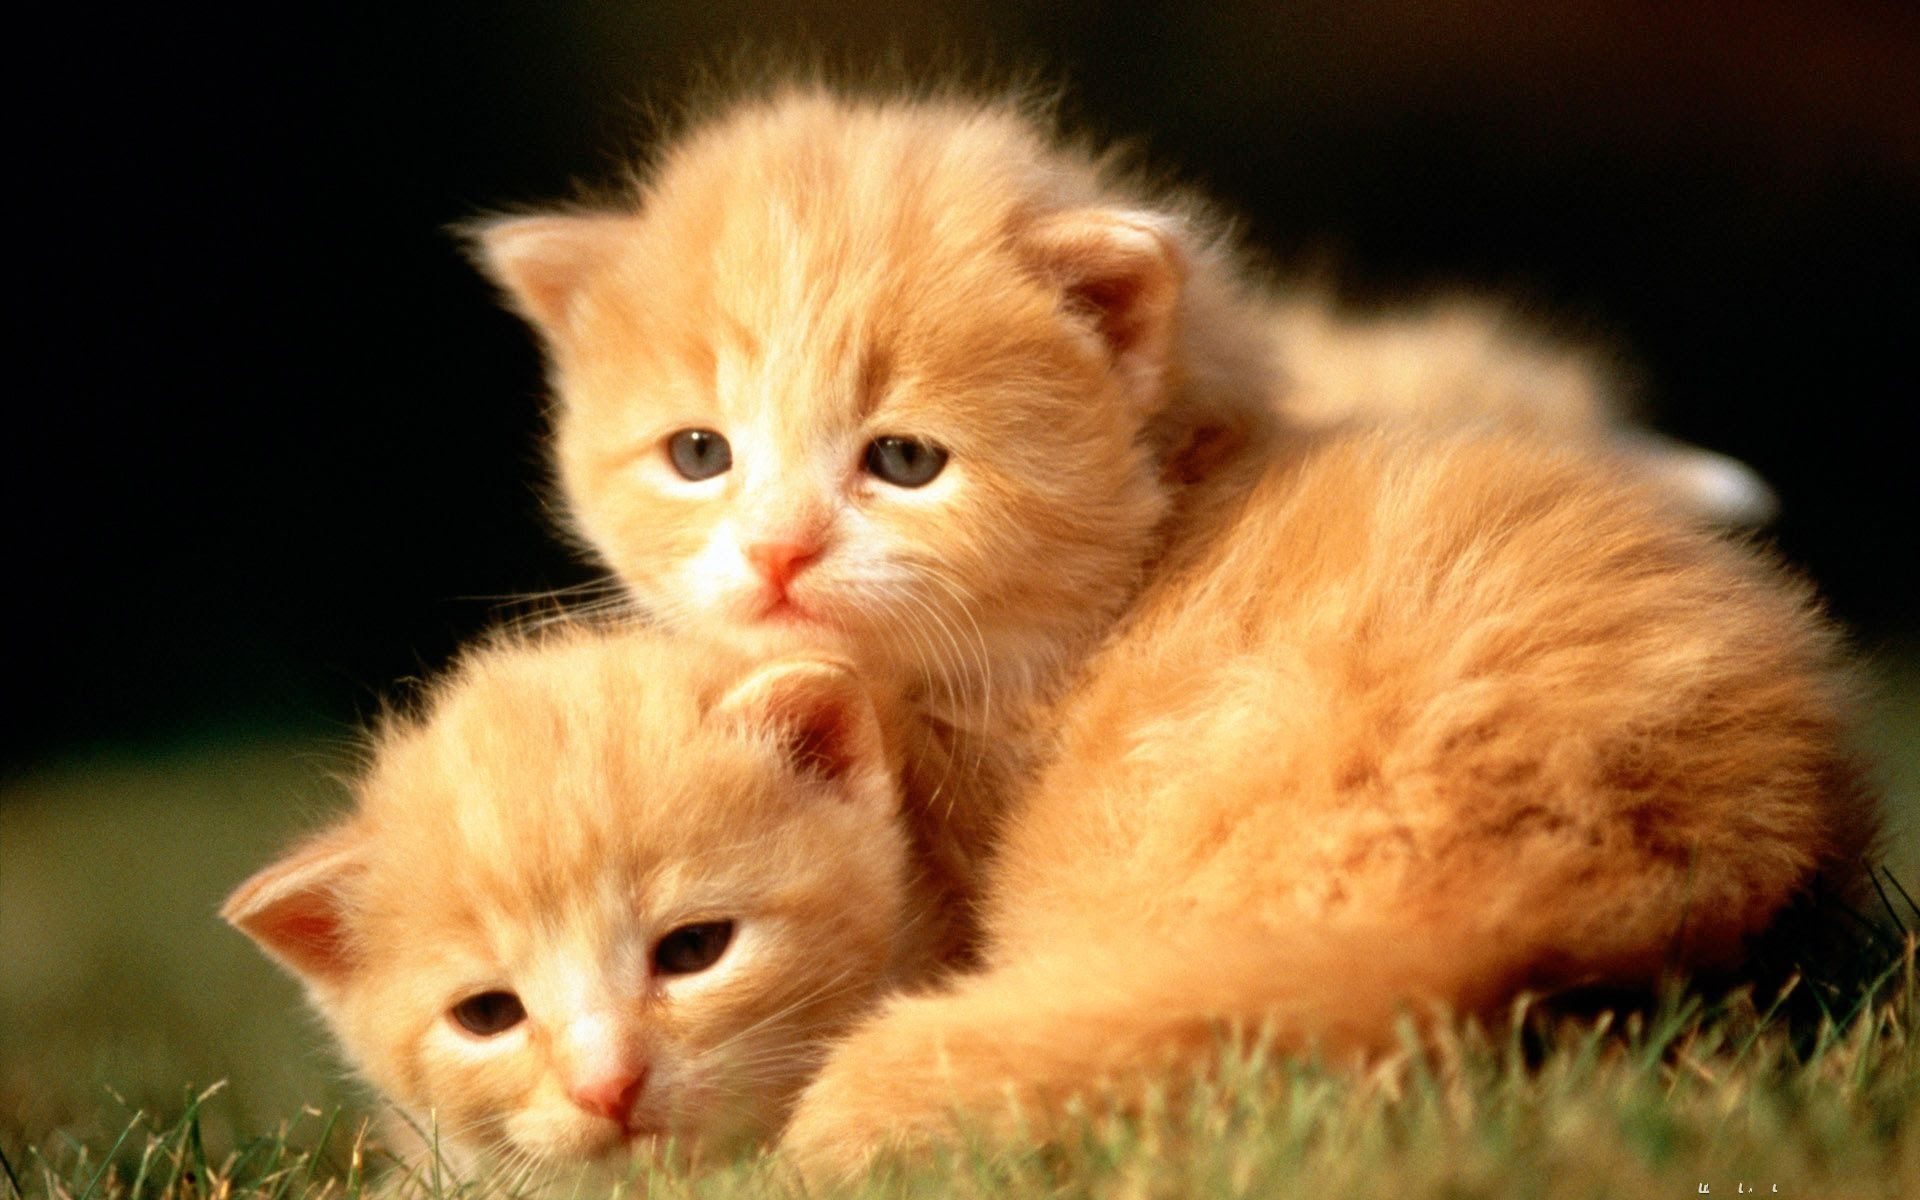 CUTE BABY KITTENS PILATION Top 10 MORE VIDEOS HERE s